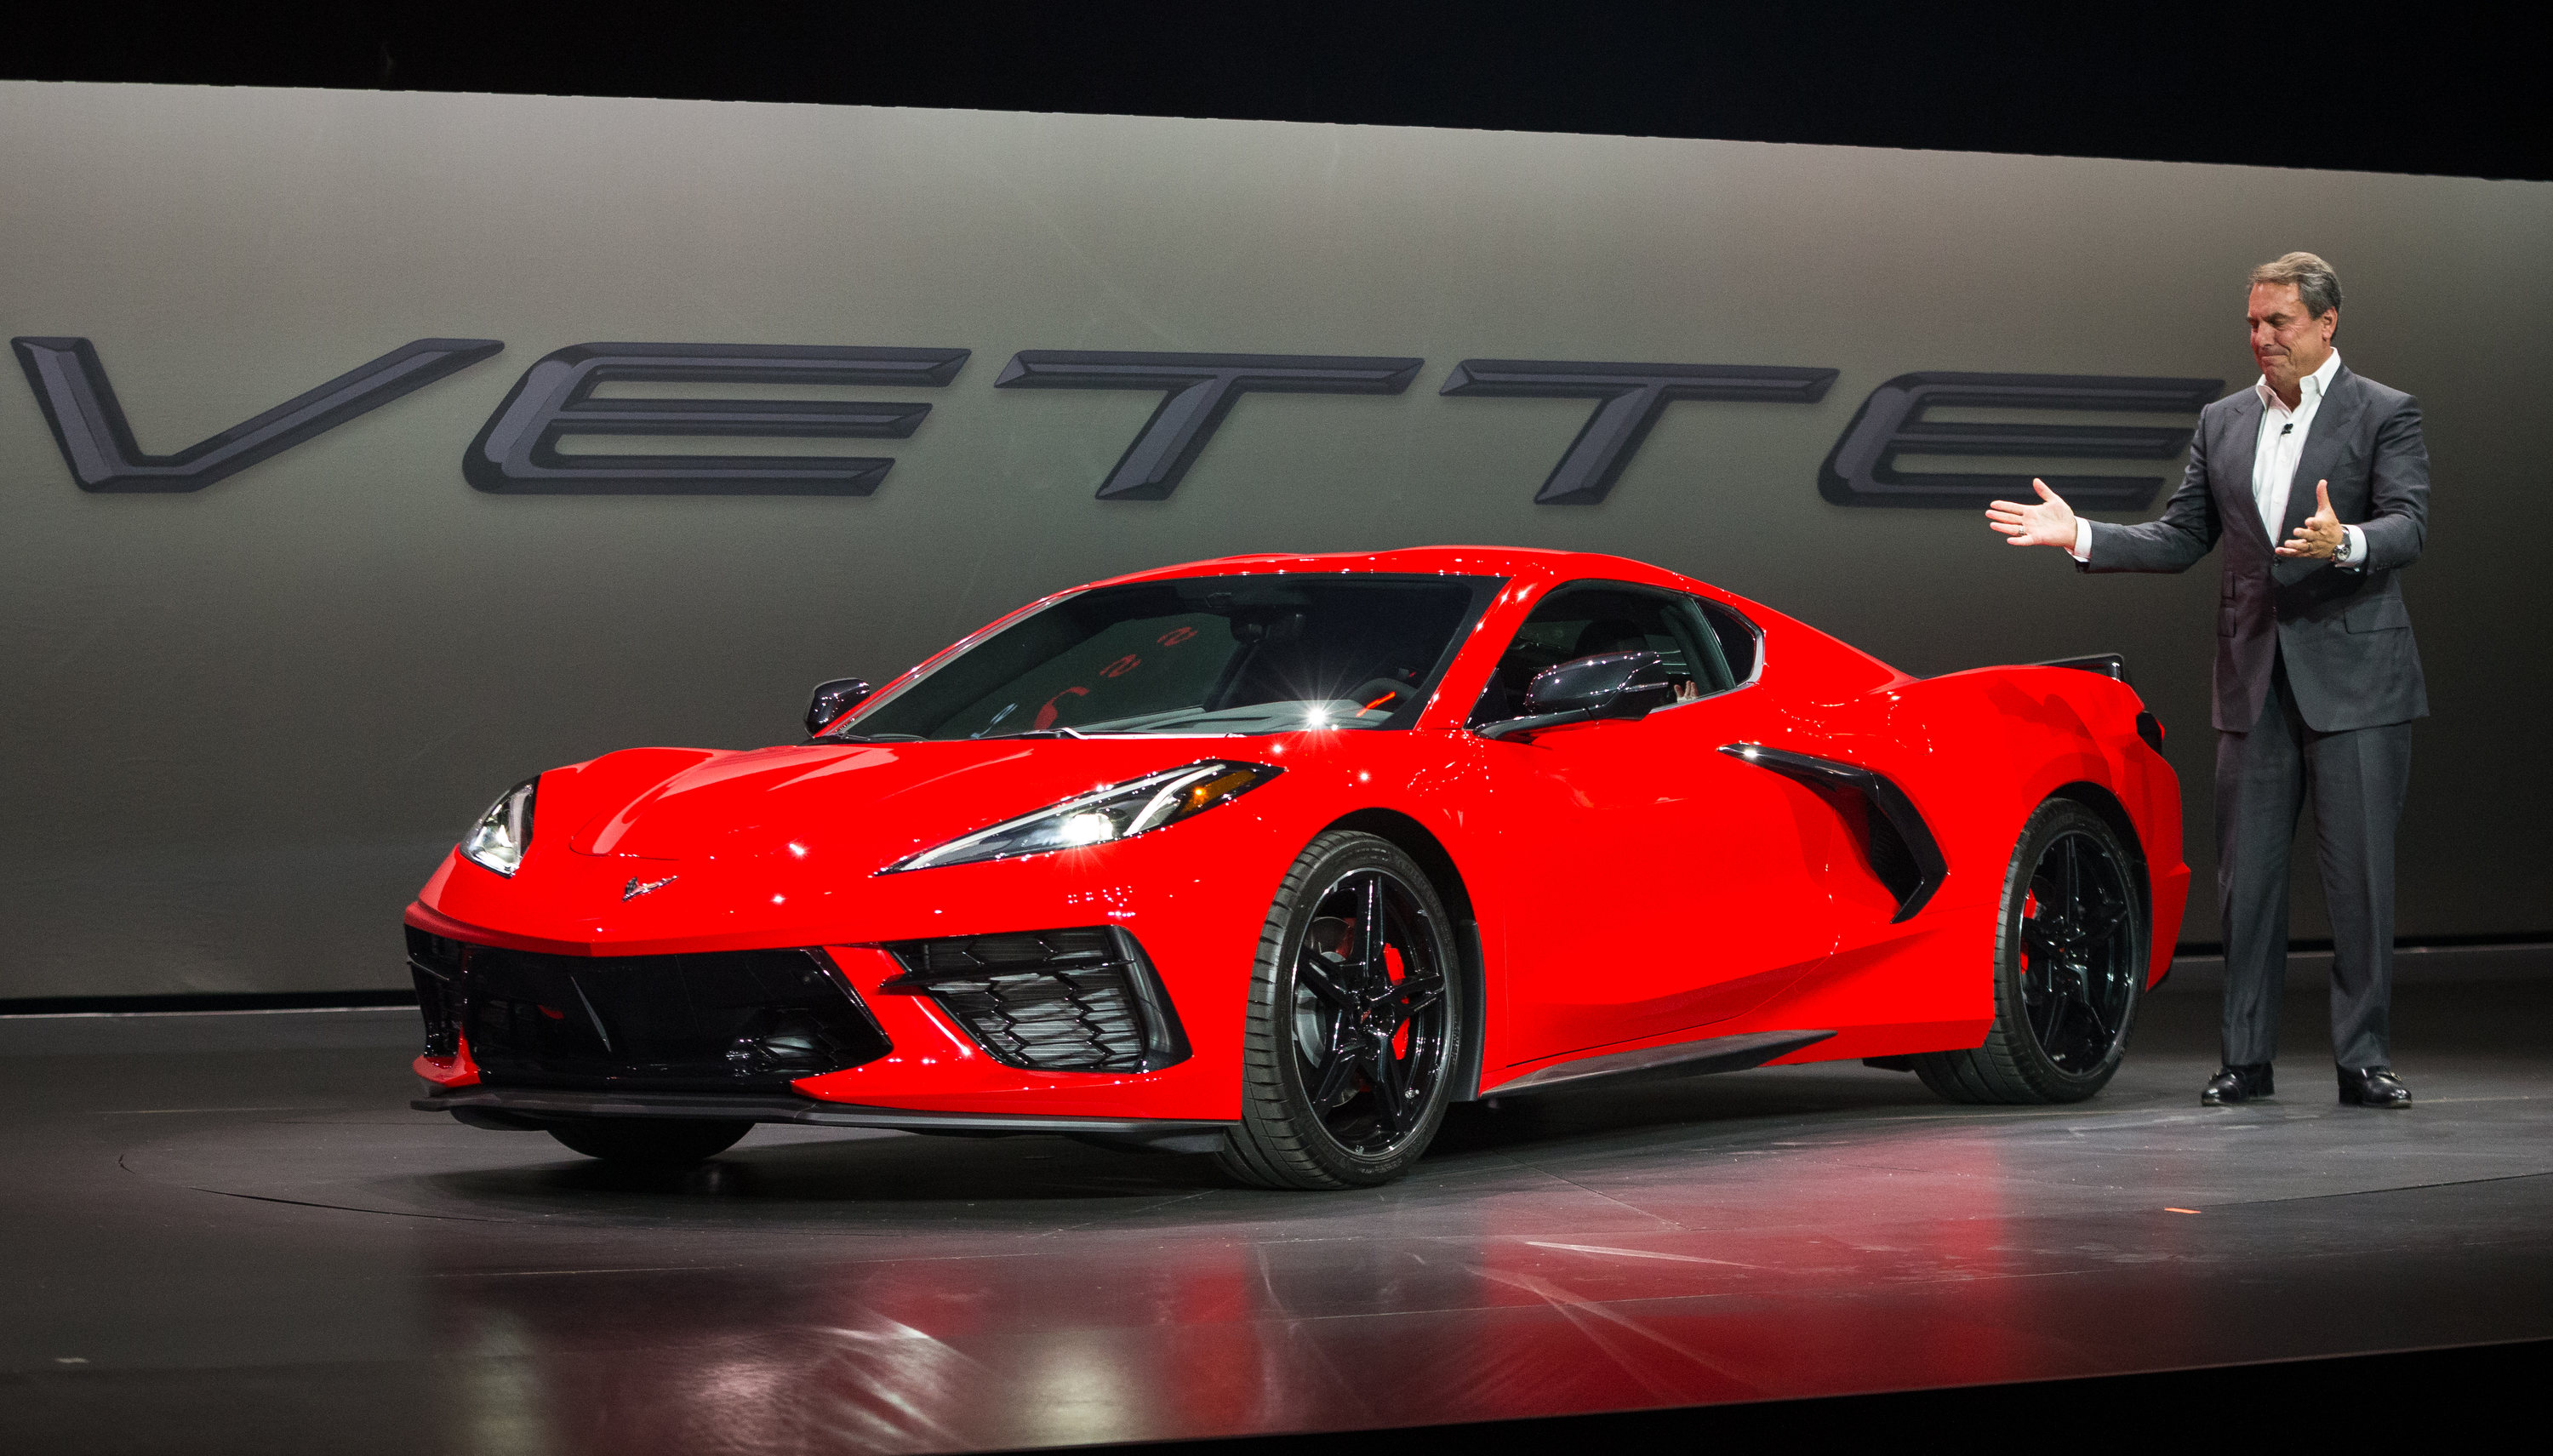 The 2020 Mid Engine Corvette Is Revealed With 495 Horsepower